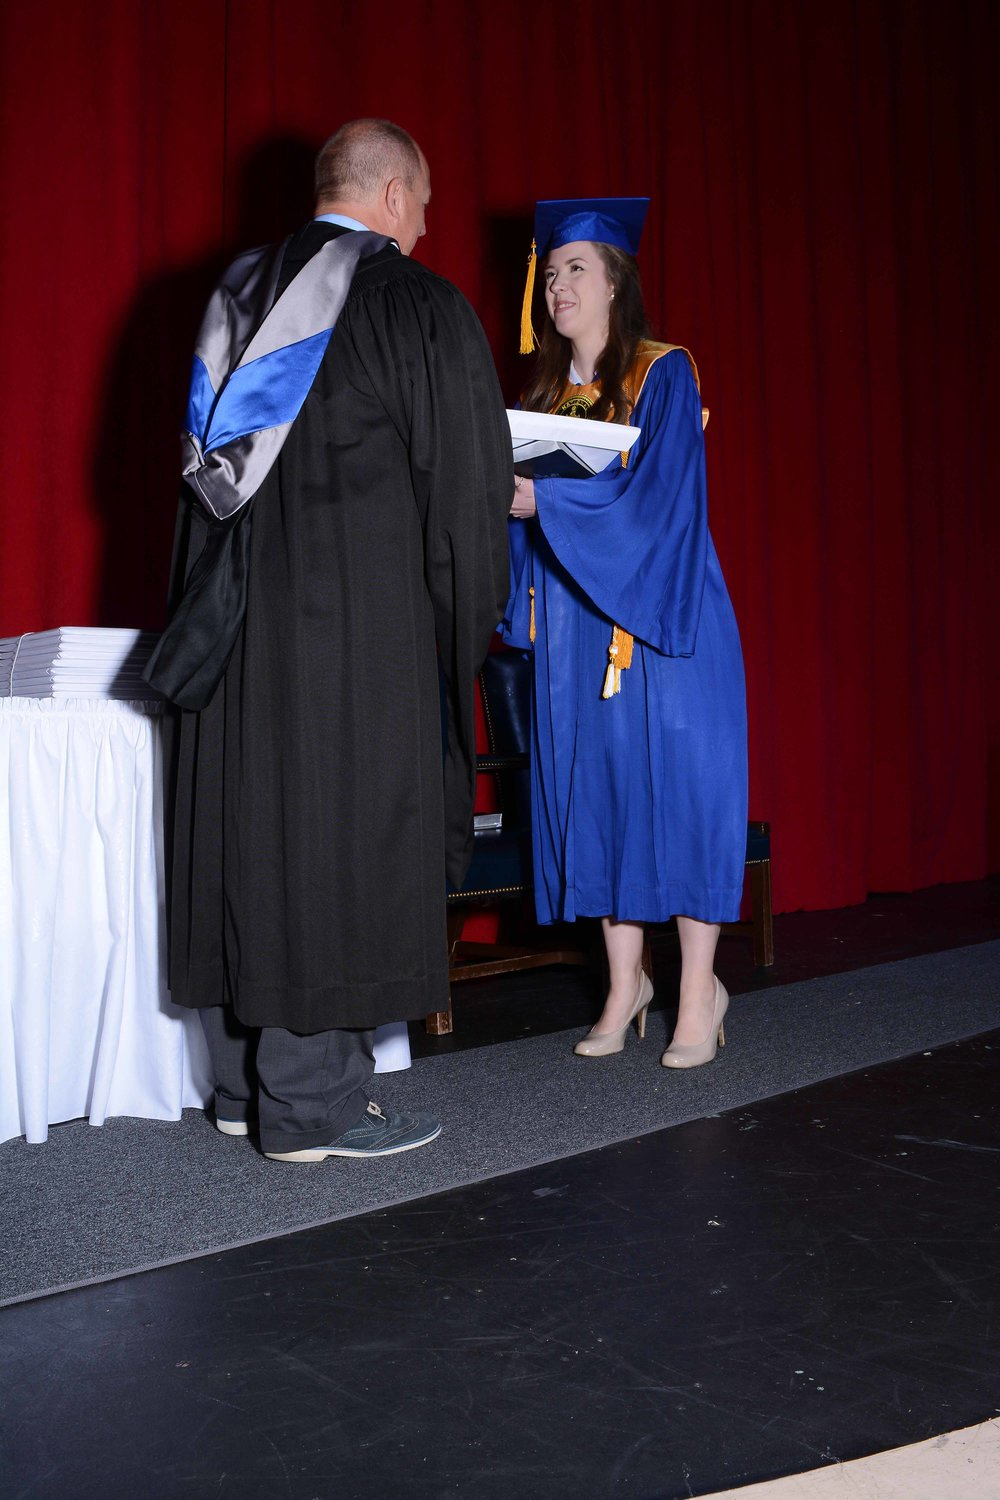 May14 Commencement40.jpg